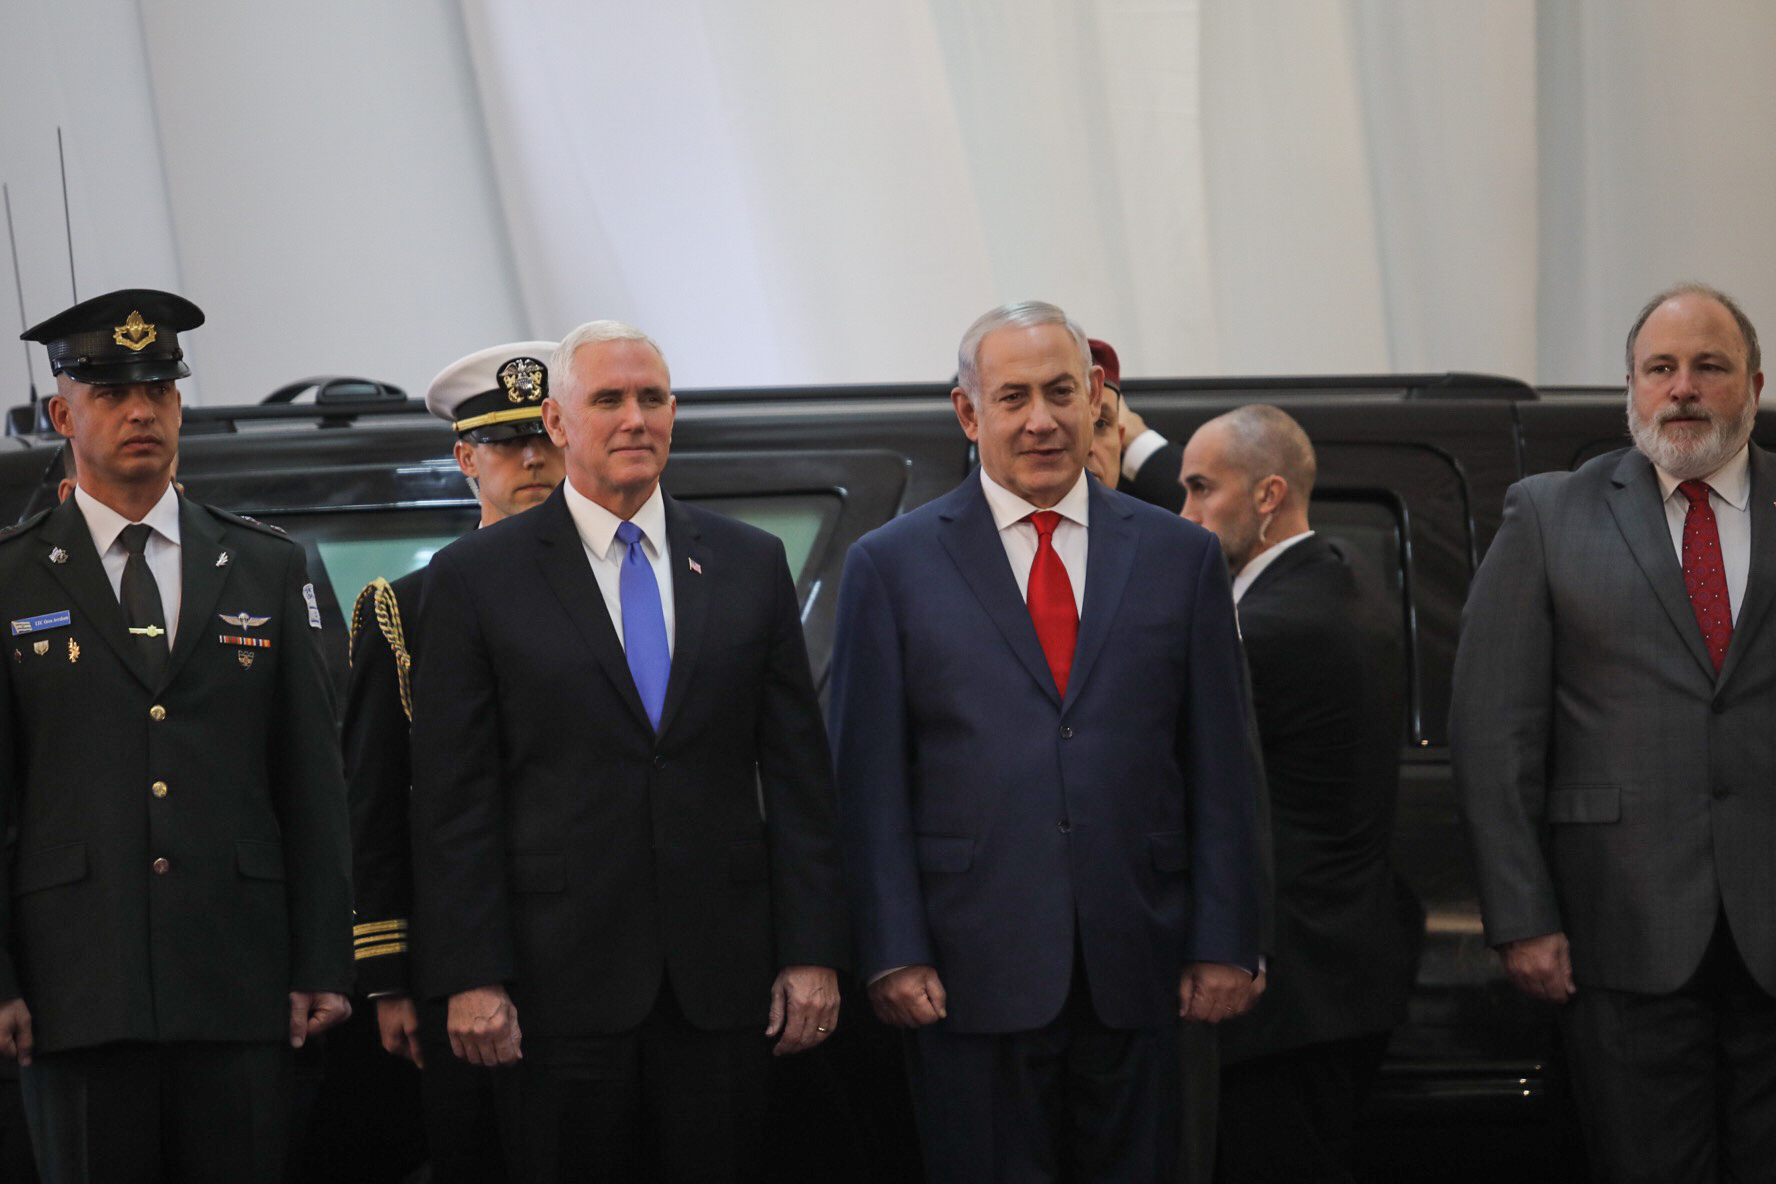 Netanyahu: Pence Making History as First VP to Address Knesset